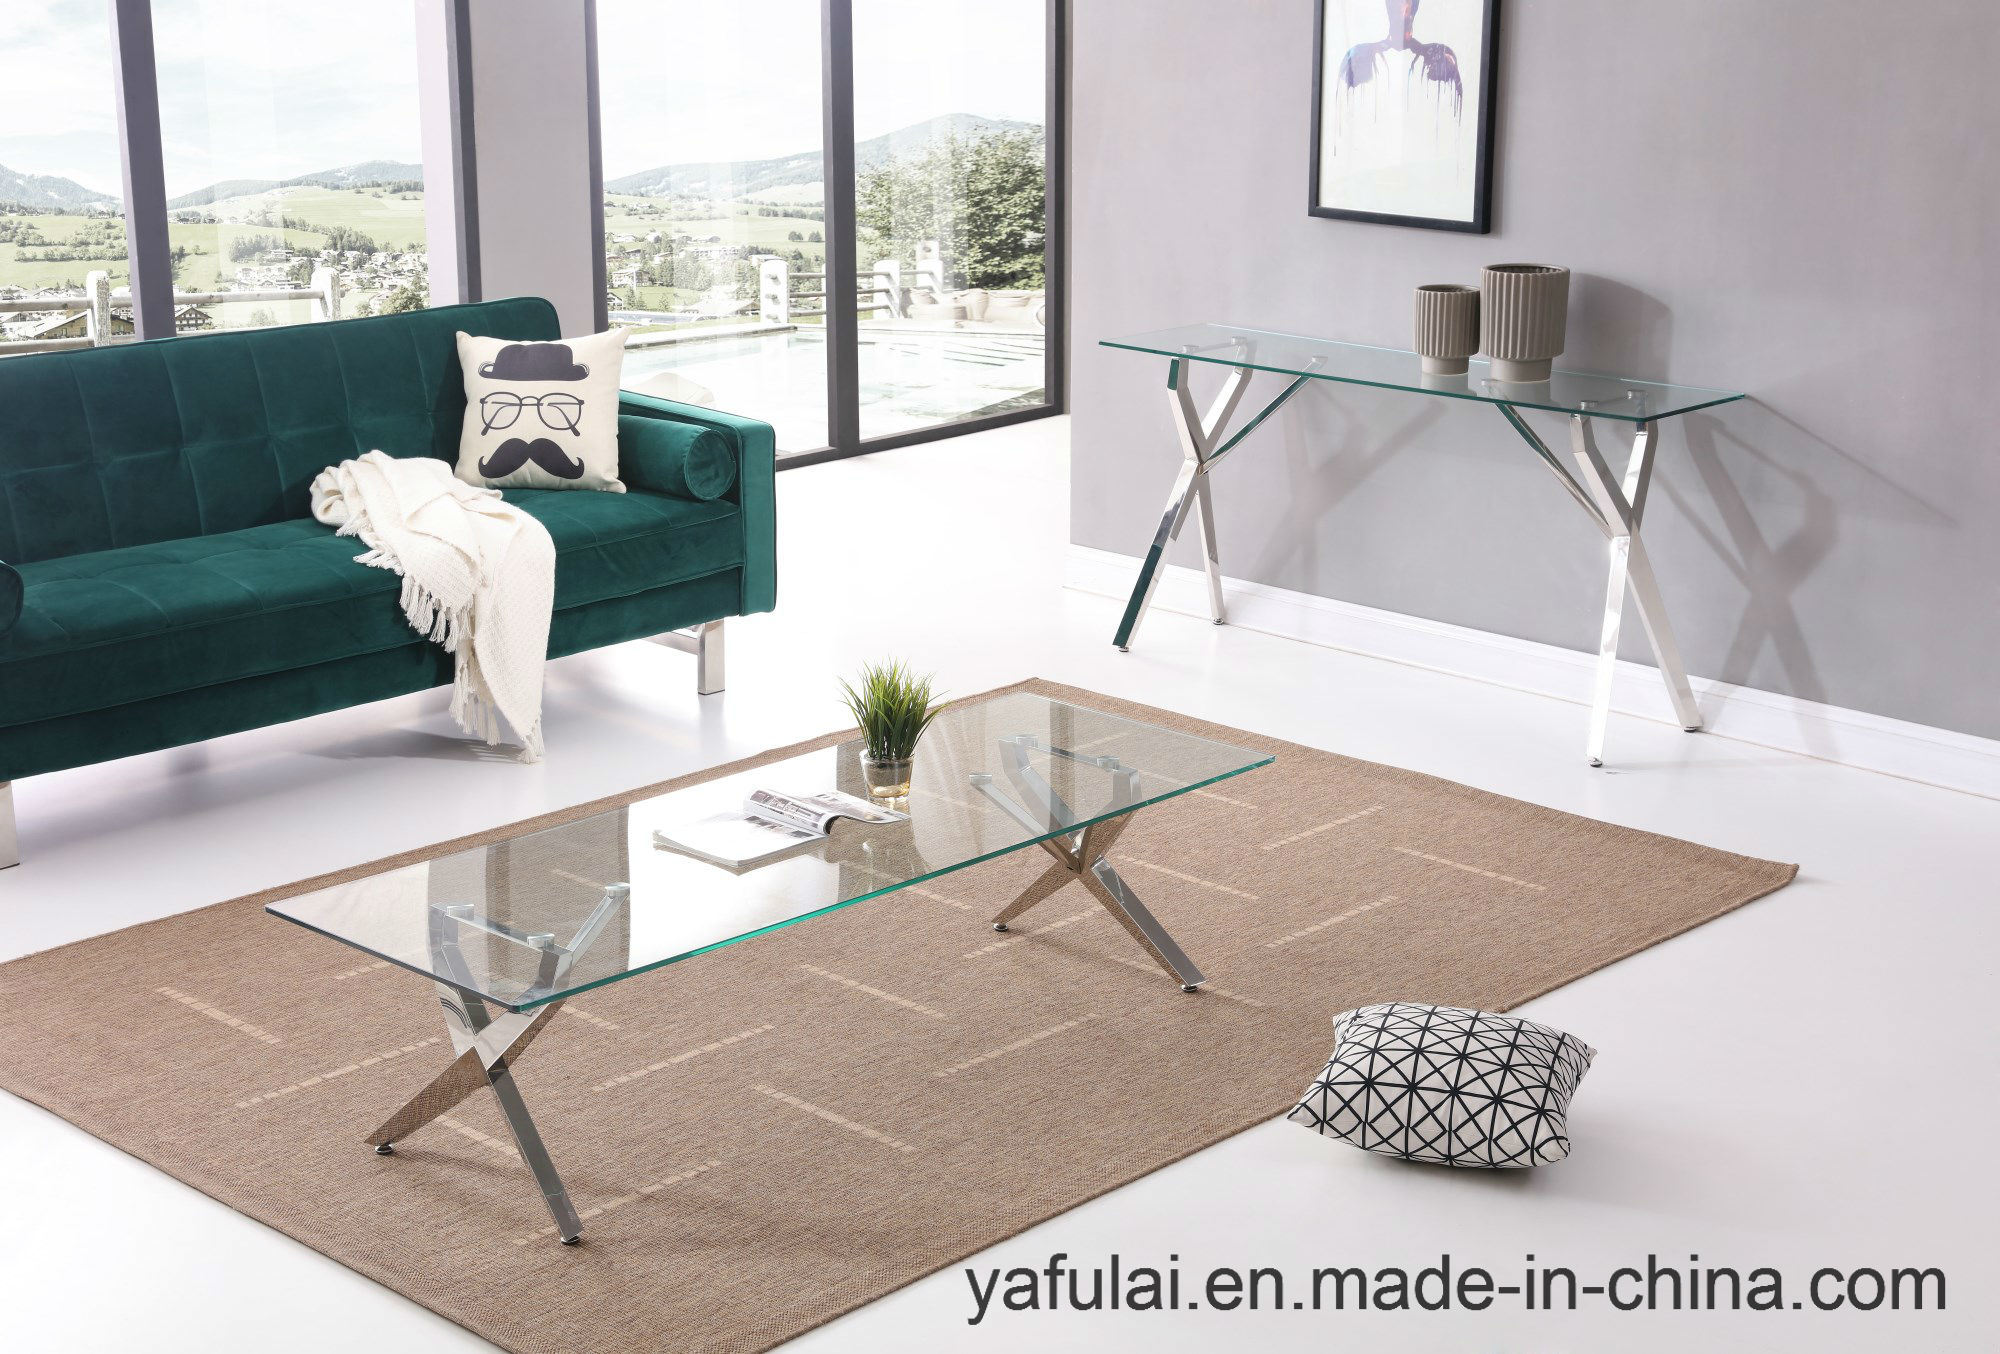 Side Table Modern Design.Hot Item Modern Design Temered Glass Coffee Table Side Table Furniture Set